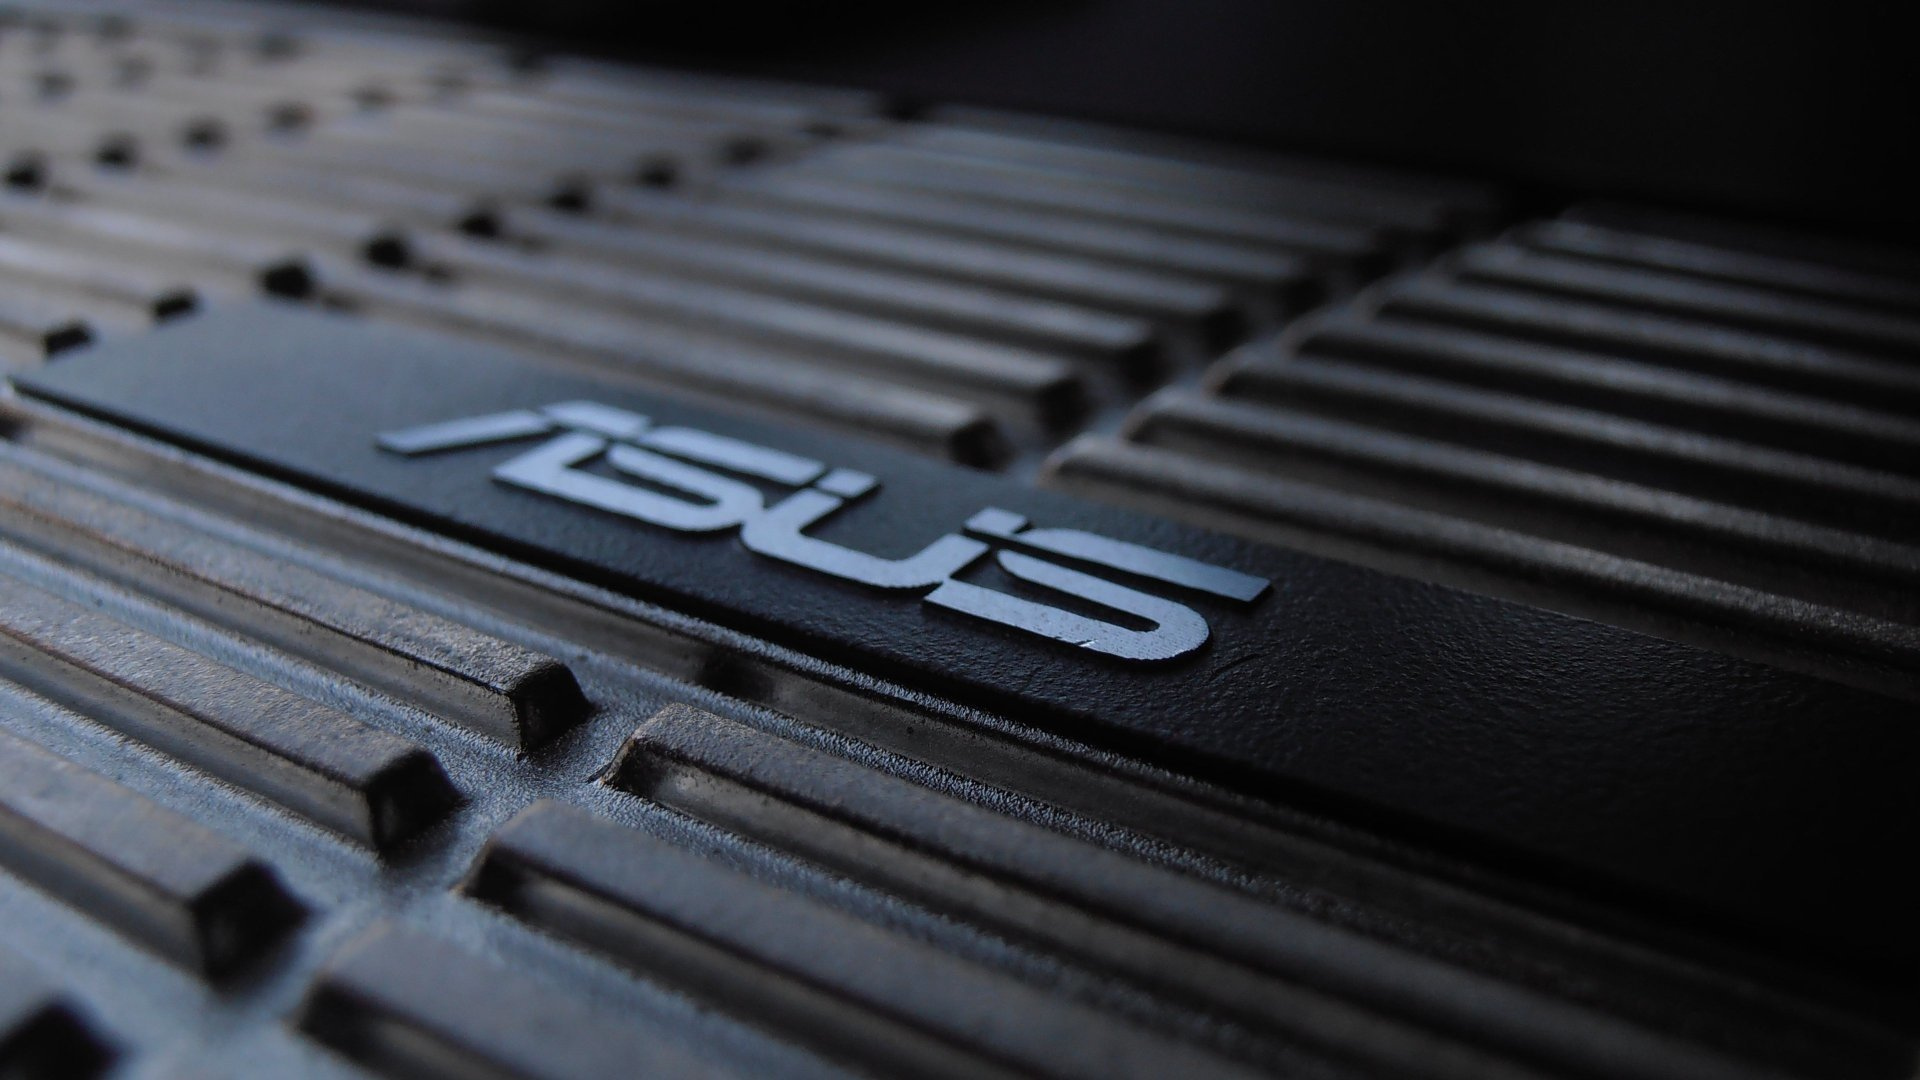 Technology - Asus  Computer Republic of Gamers Wallpaper